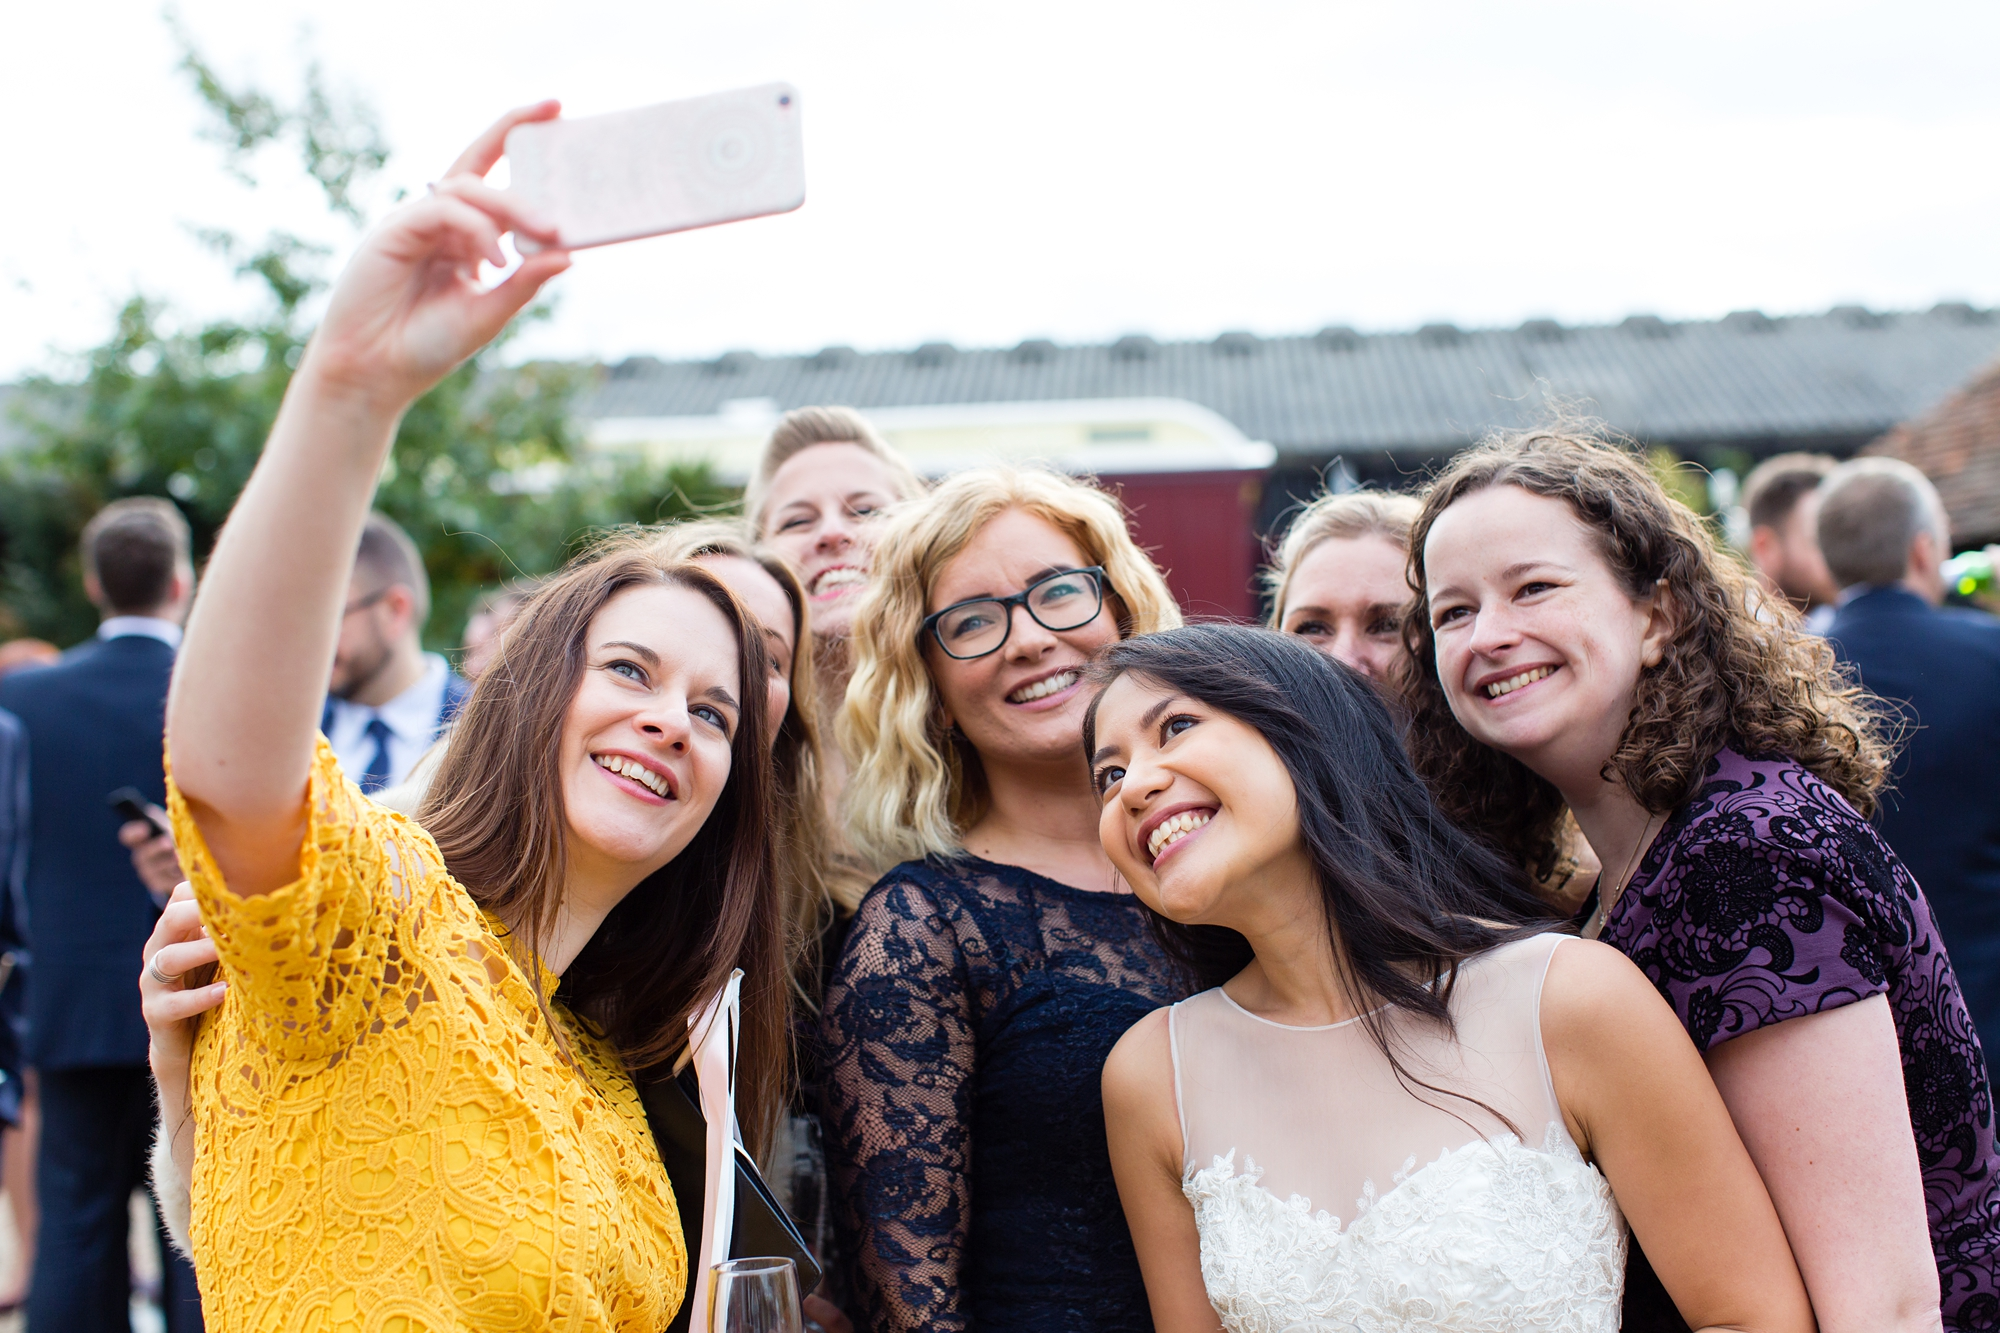 Preston Court Wedding Photography guests take selfie with the bride